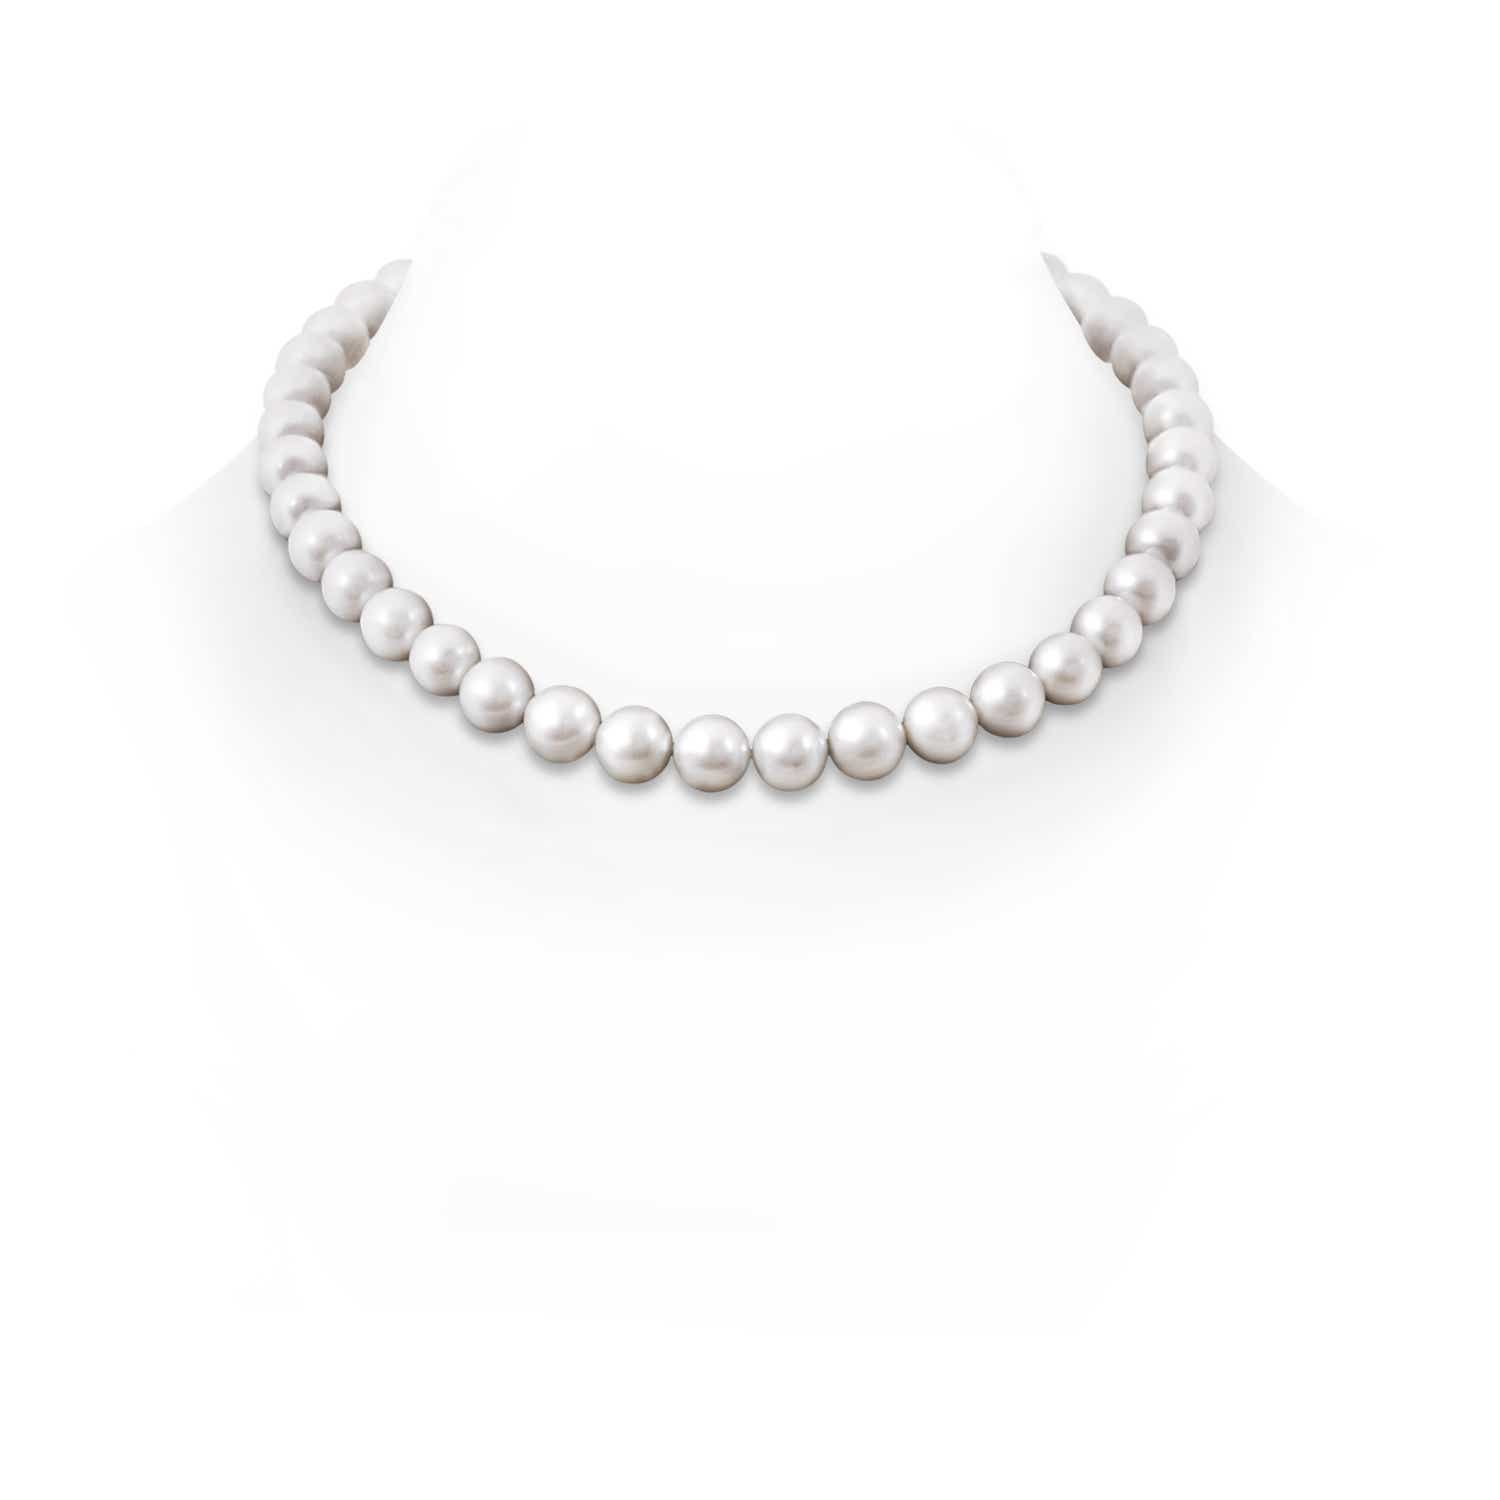 10 11mm, 16 Classic Freshwater Cultured Pearl Necklace